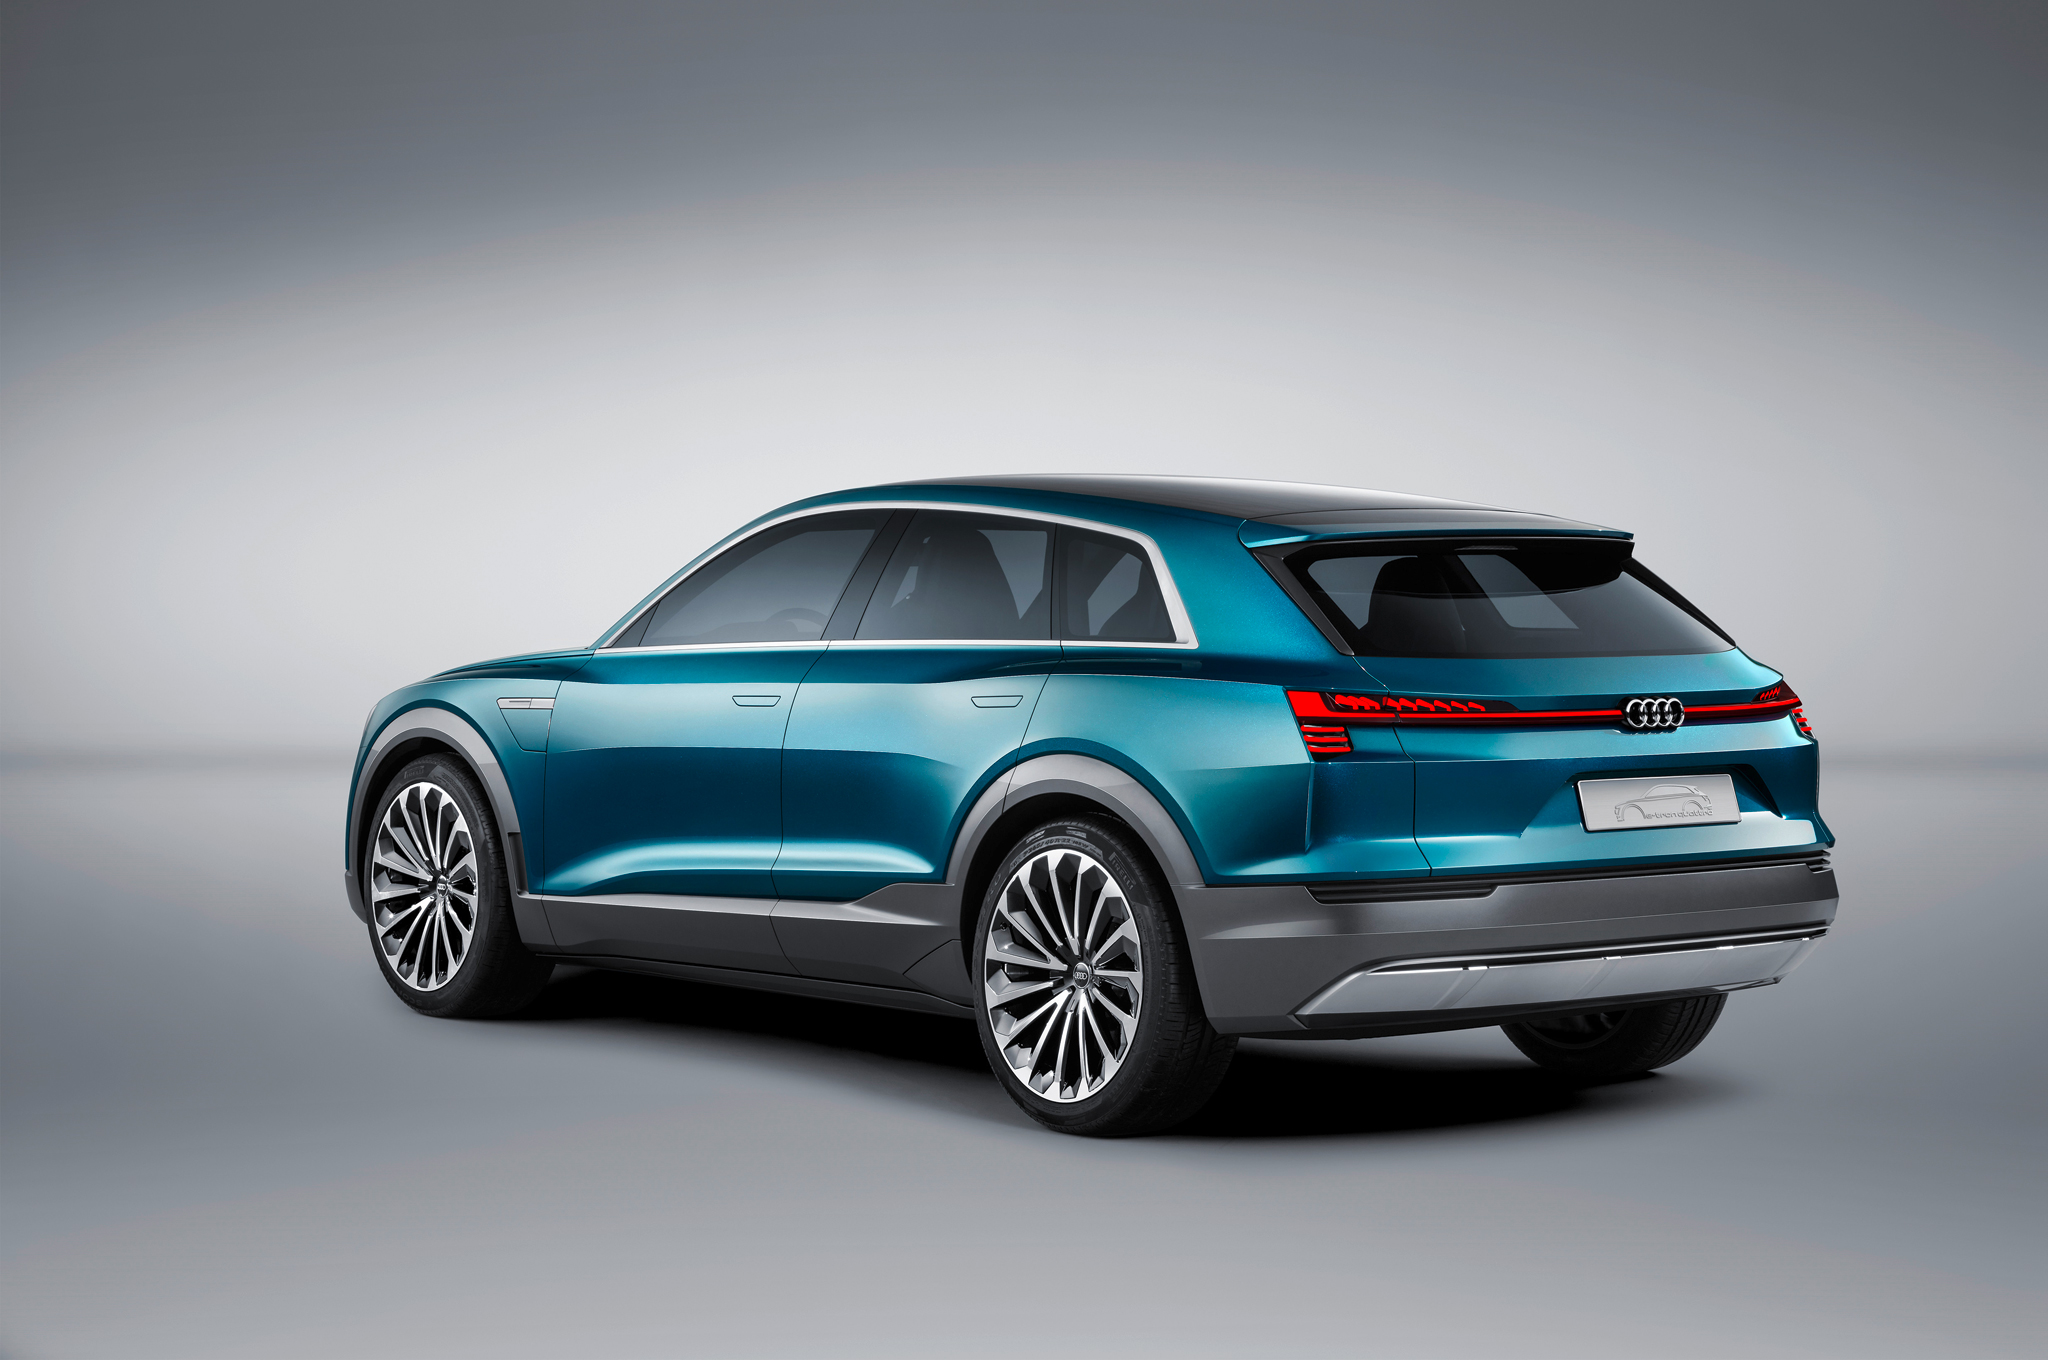 All-Electric Audi Q6 E-tron Coming In 2018 With 300+ Miles